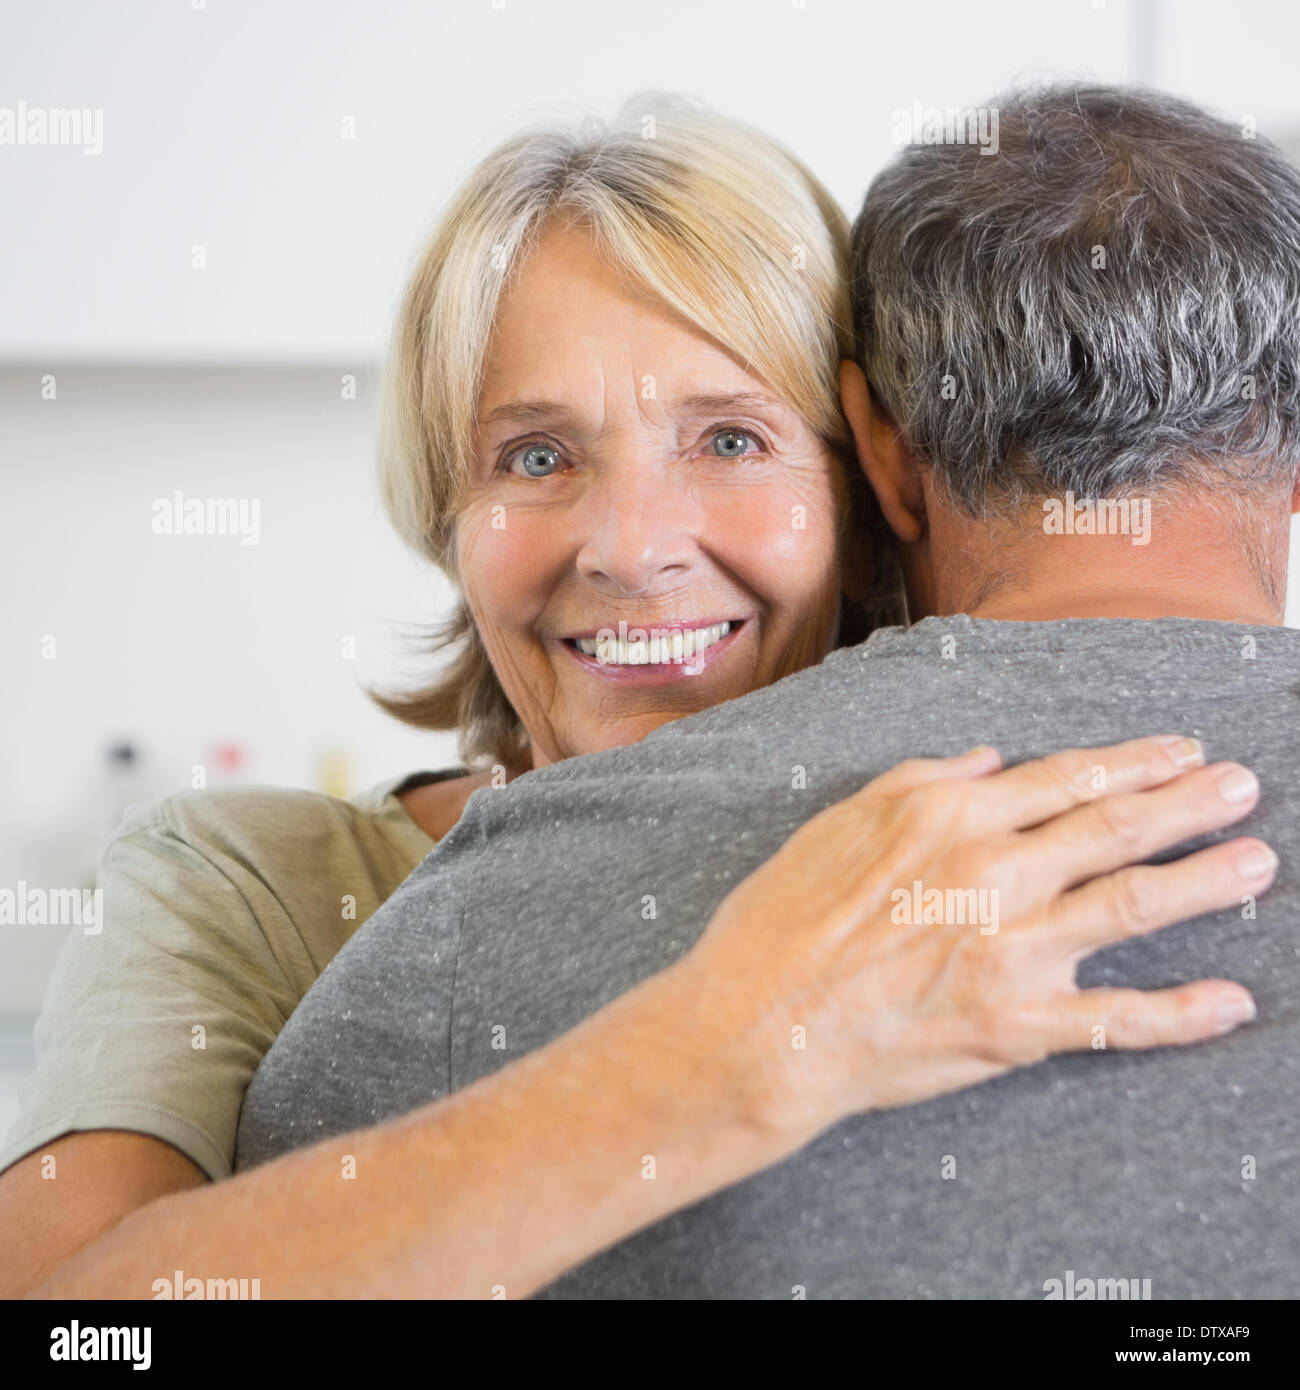 Cute couple embracing - Stock Image